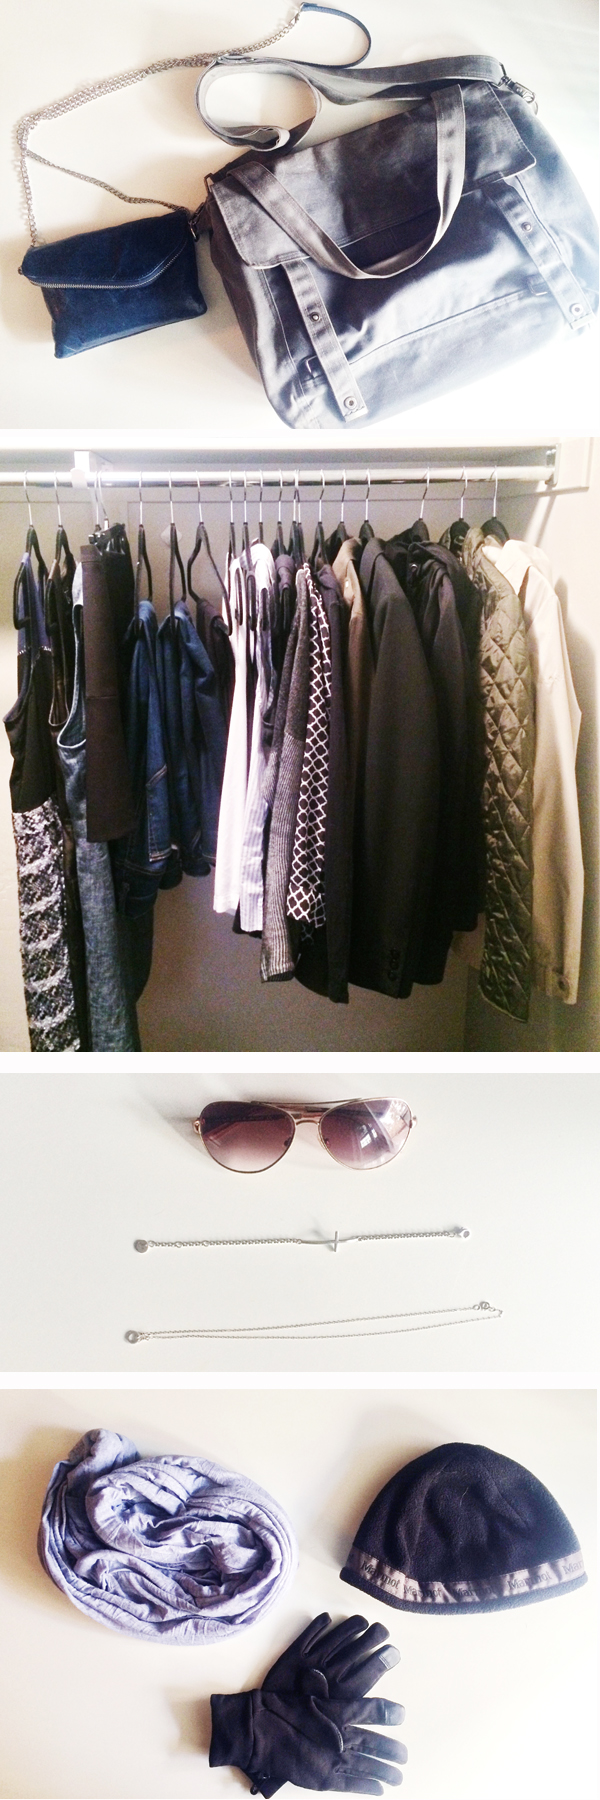 Capsule Wardrobe Items for Project 333 (dress with 33 items or less for 3 months)